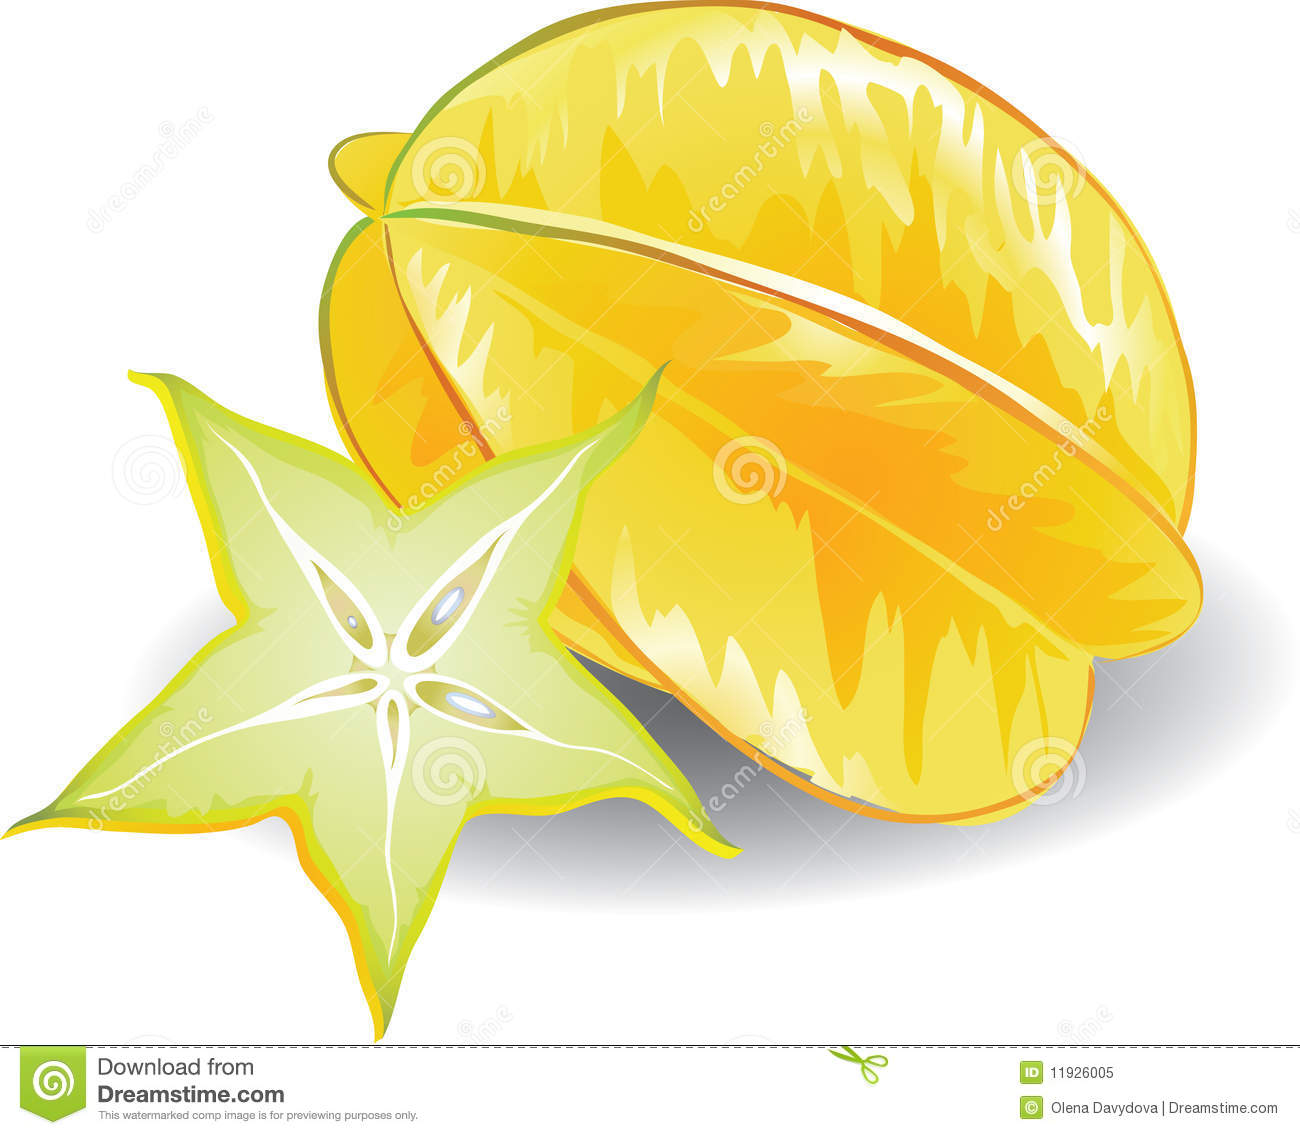 Carambola Stock Illustrations.